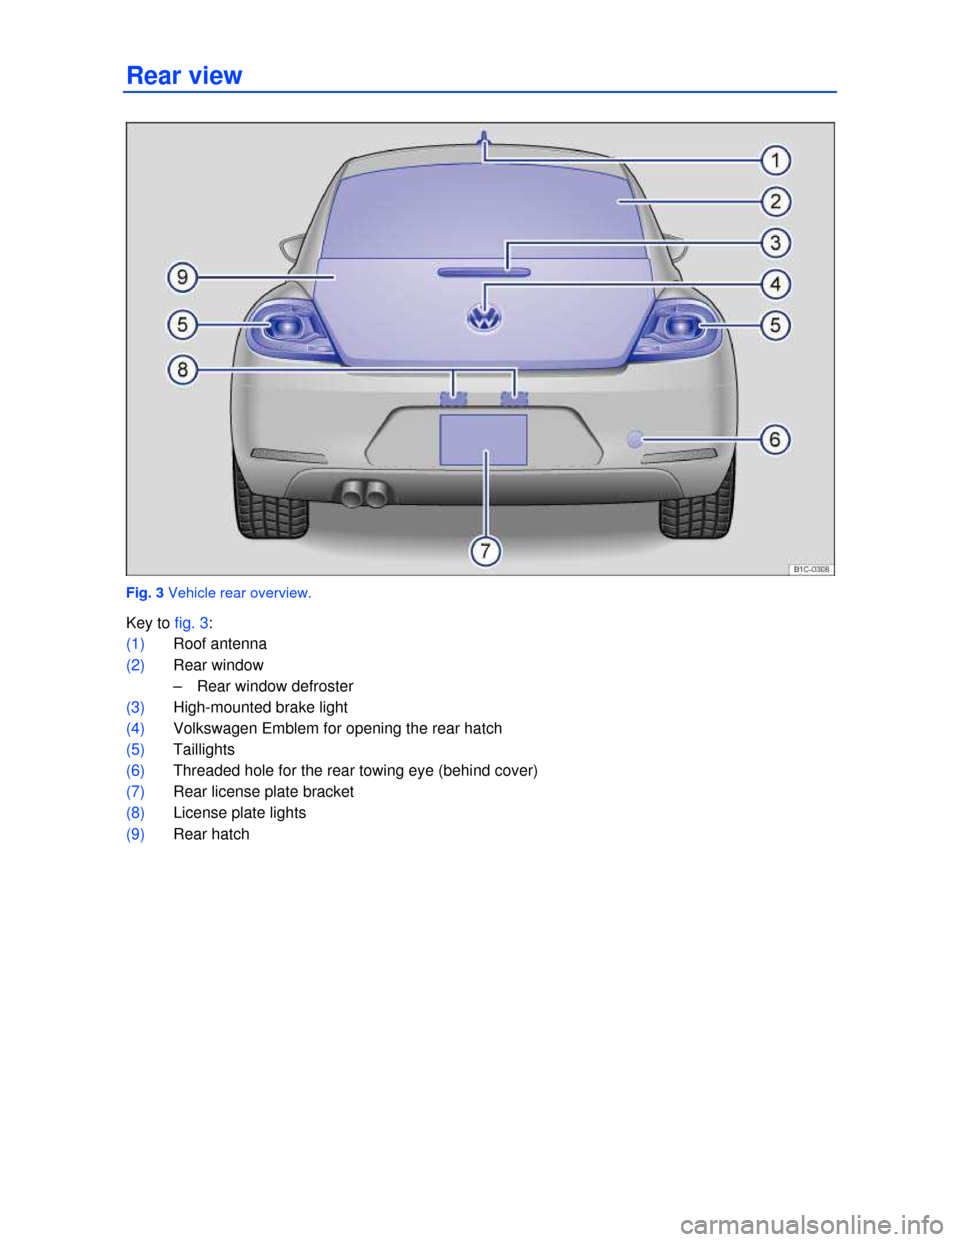 VOLKSWAGEN BEETLE 2013 3.G Owners Manual   Rear view    Fig. 3 Vehicle rear overview.  Key to fig. 3:  (1) Roof antenna   (2) Rear window  –  Rear window defroster   (3) High-mounted brake light  (4) Volkswagen Emblem for opening the rear